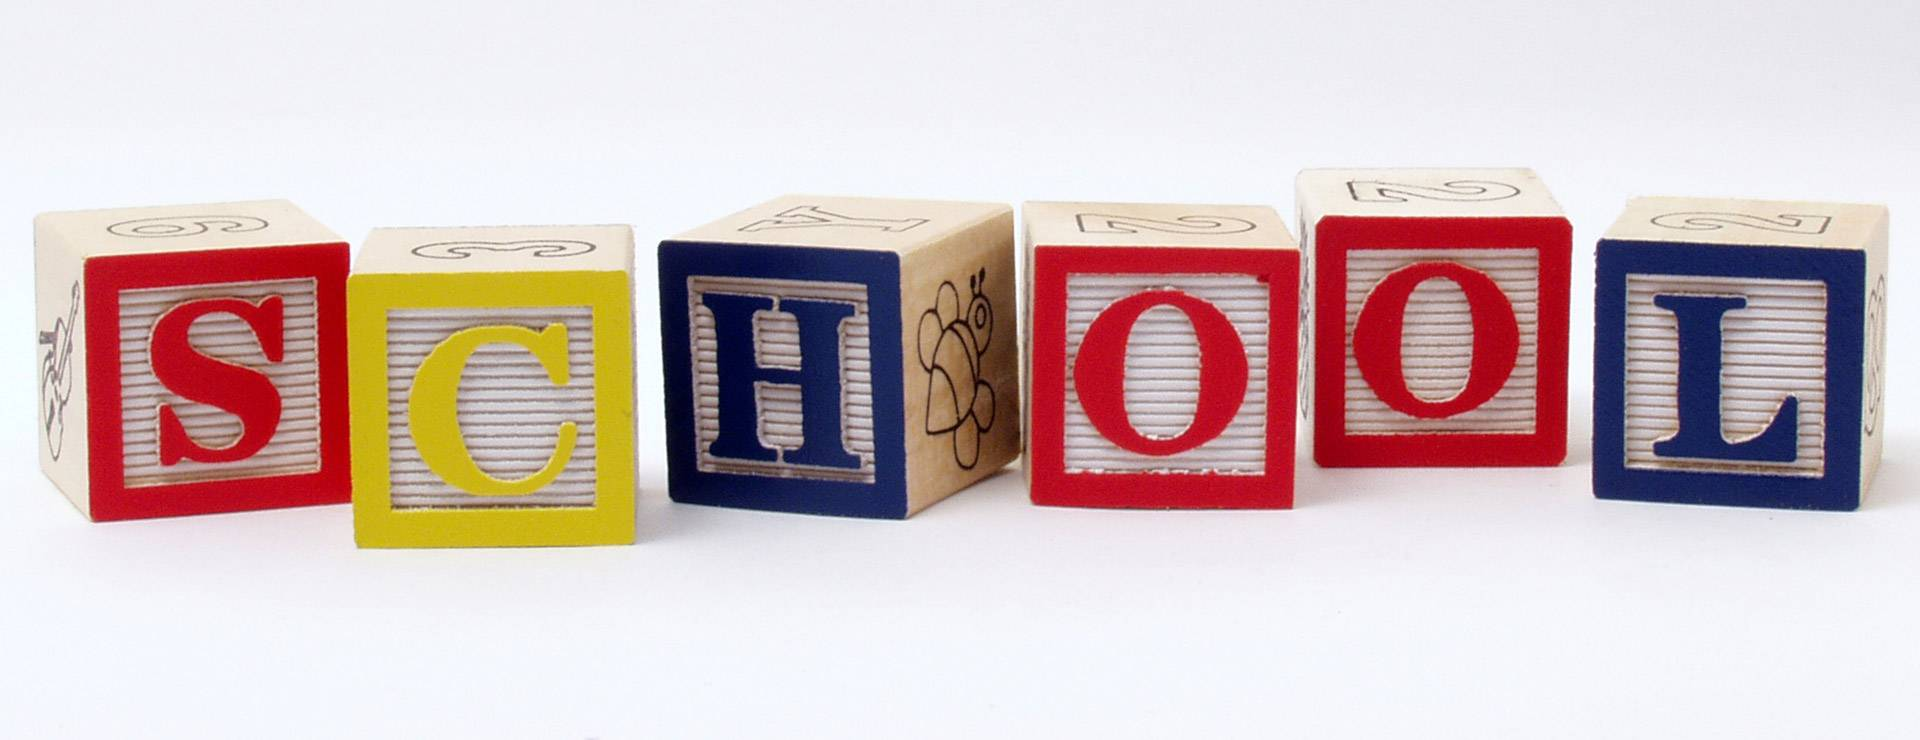 Play blocks spelling SCHOOL